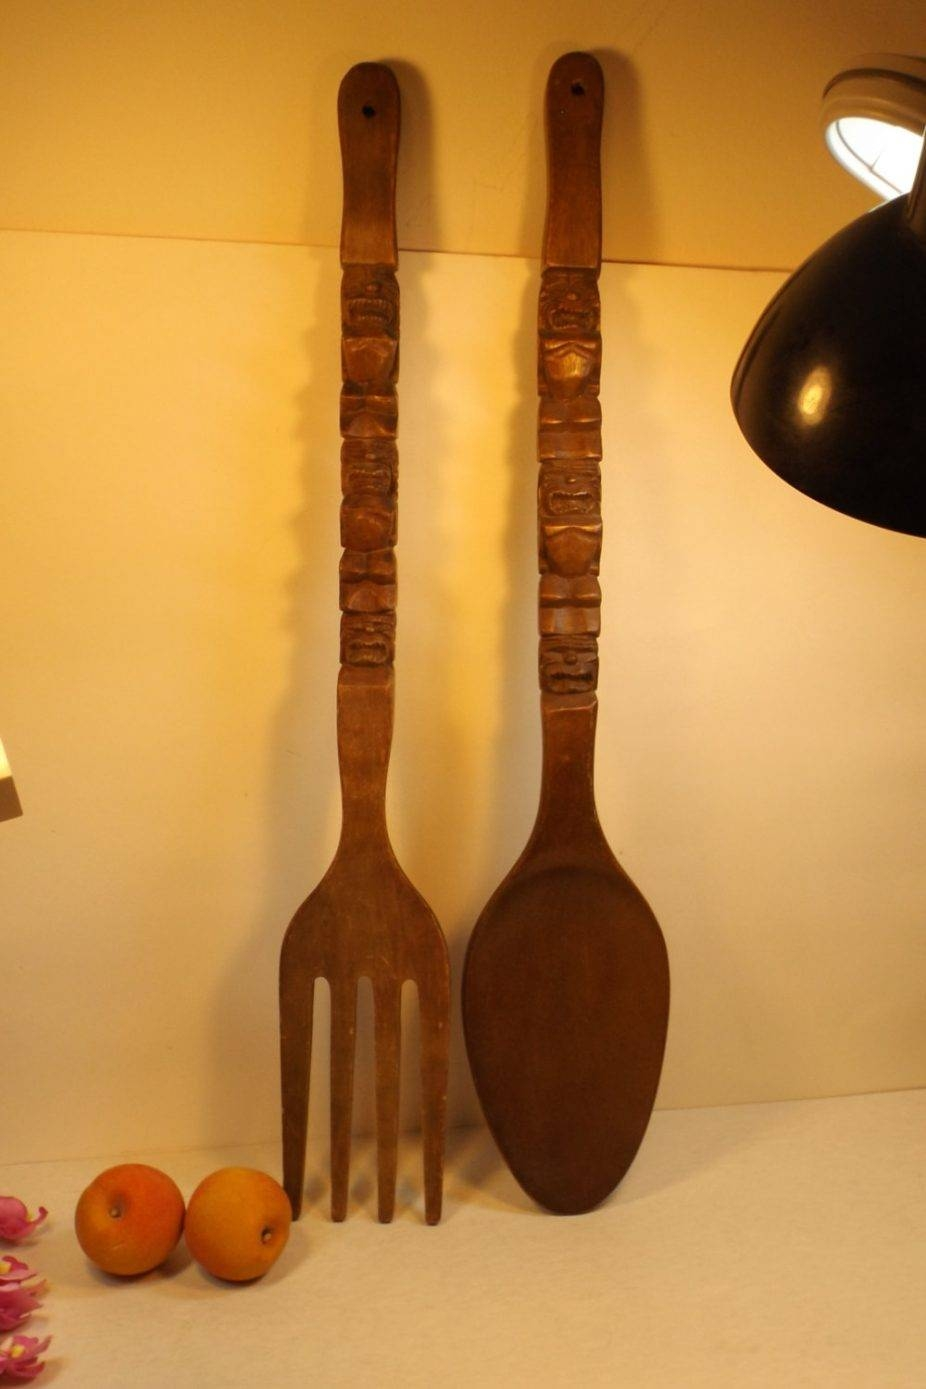 House : Outstanding Large Metal Utensil Wall Art Image Of Big Fork With Newest Large Utensil Wall Art (View 6 of 20)